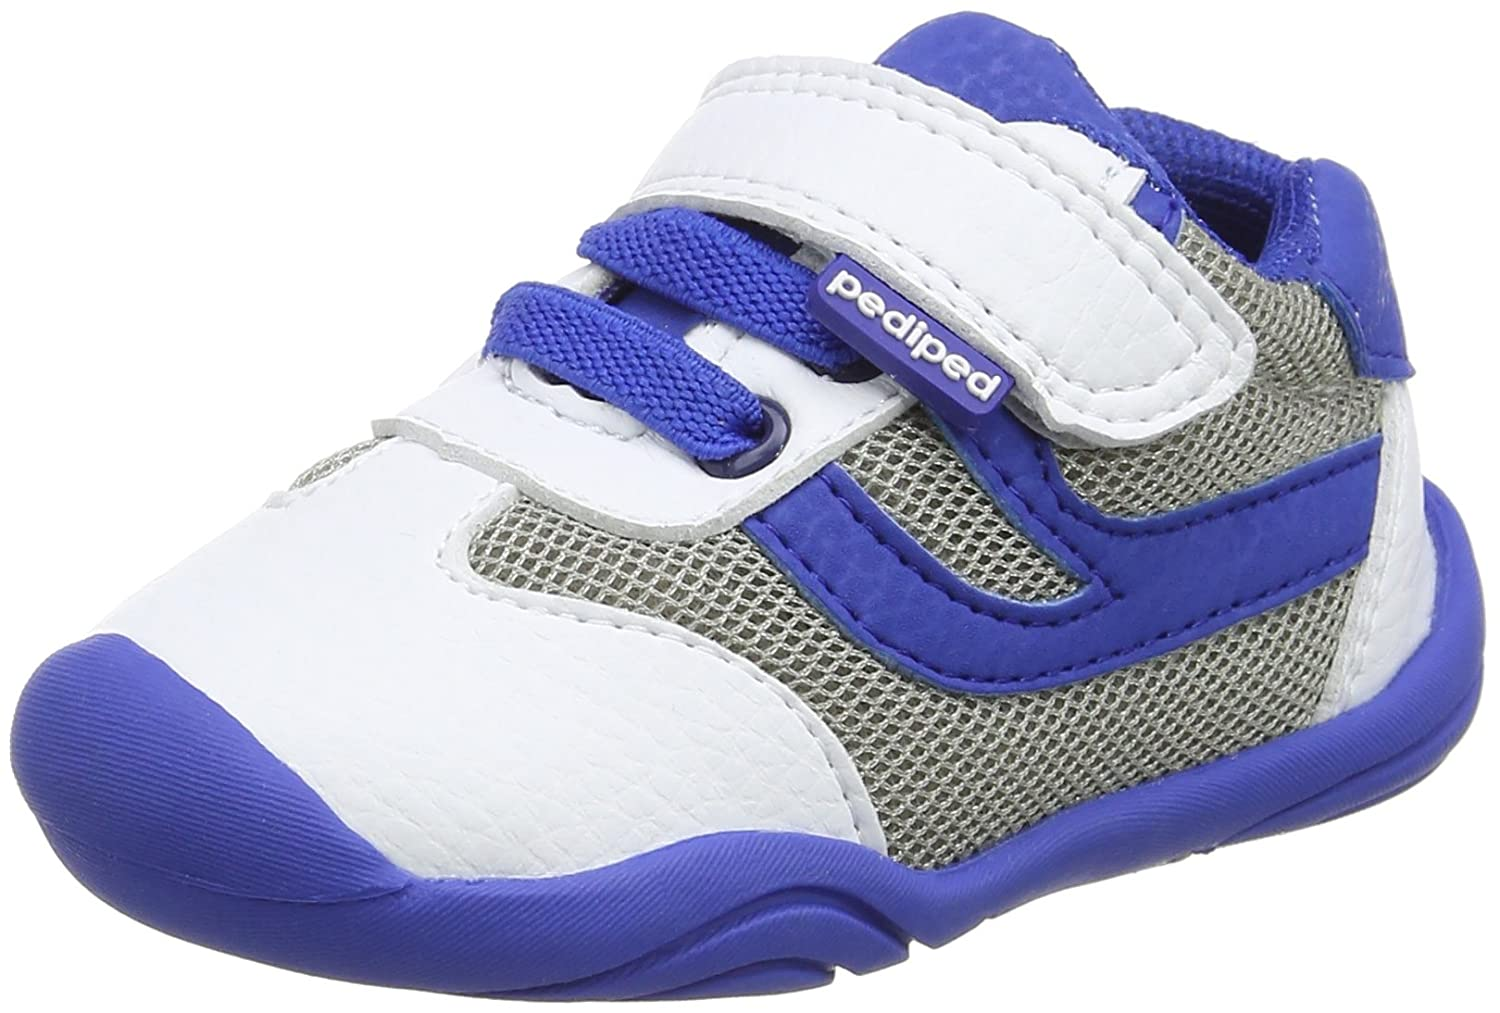 PediPed Cliff Zapatillas de running Niños